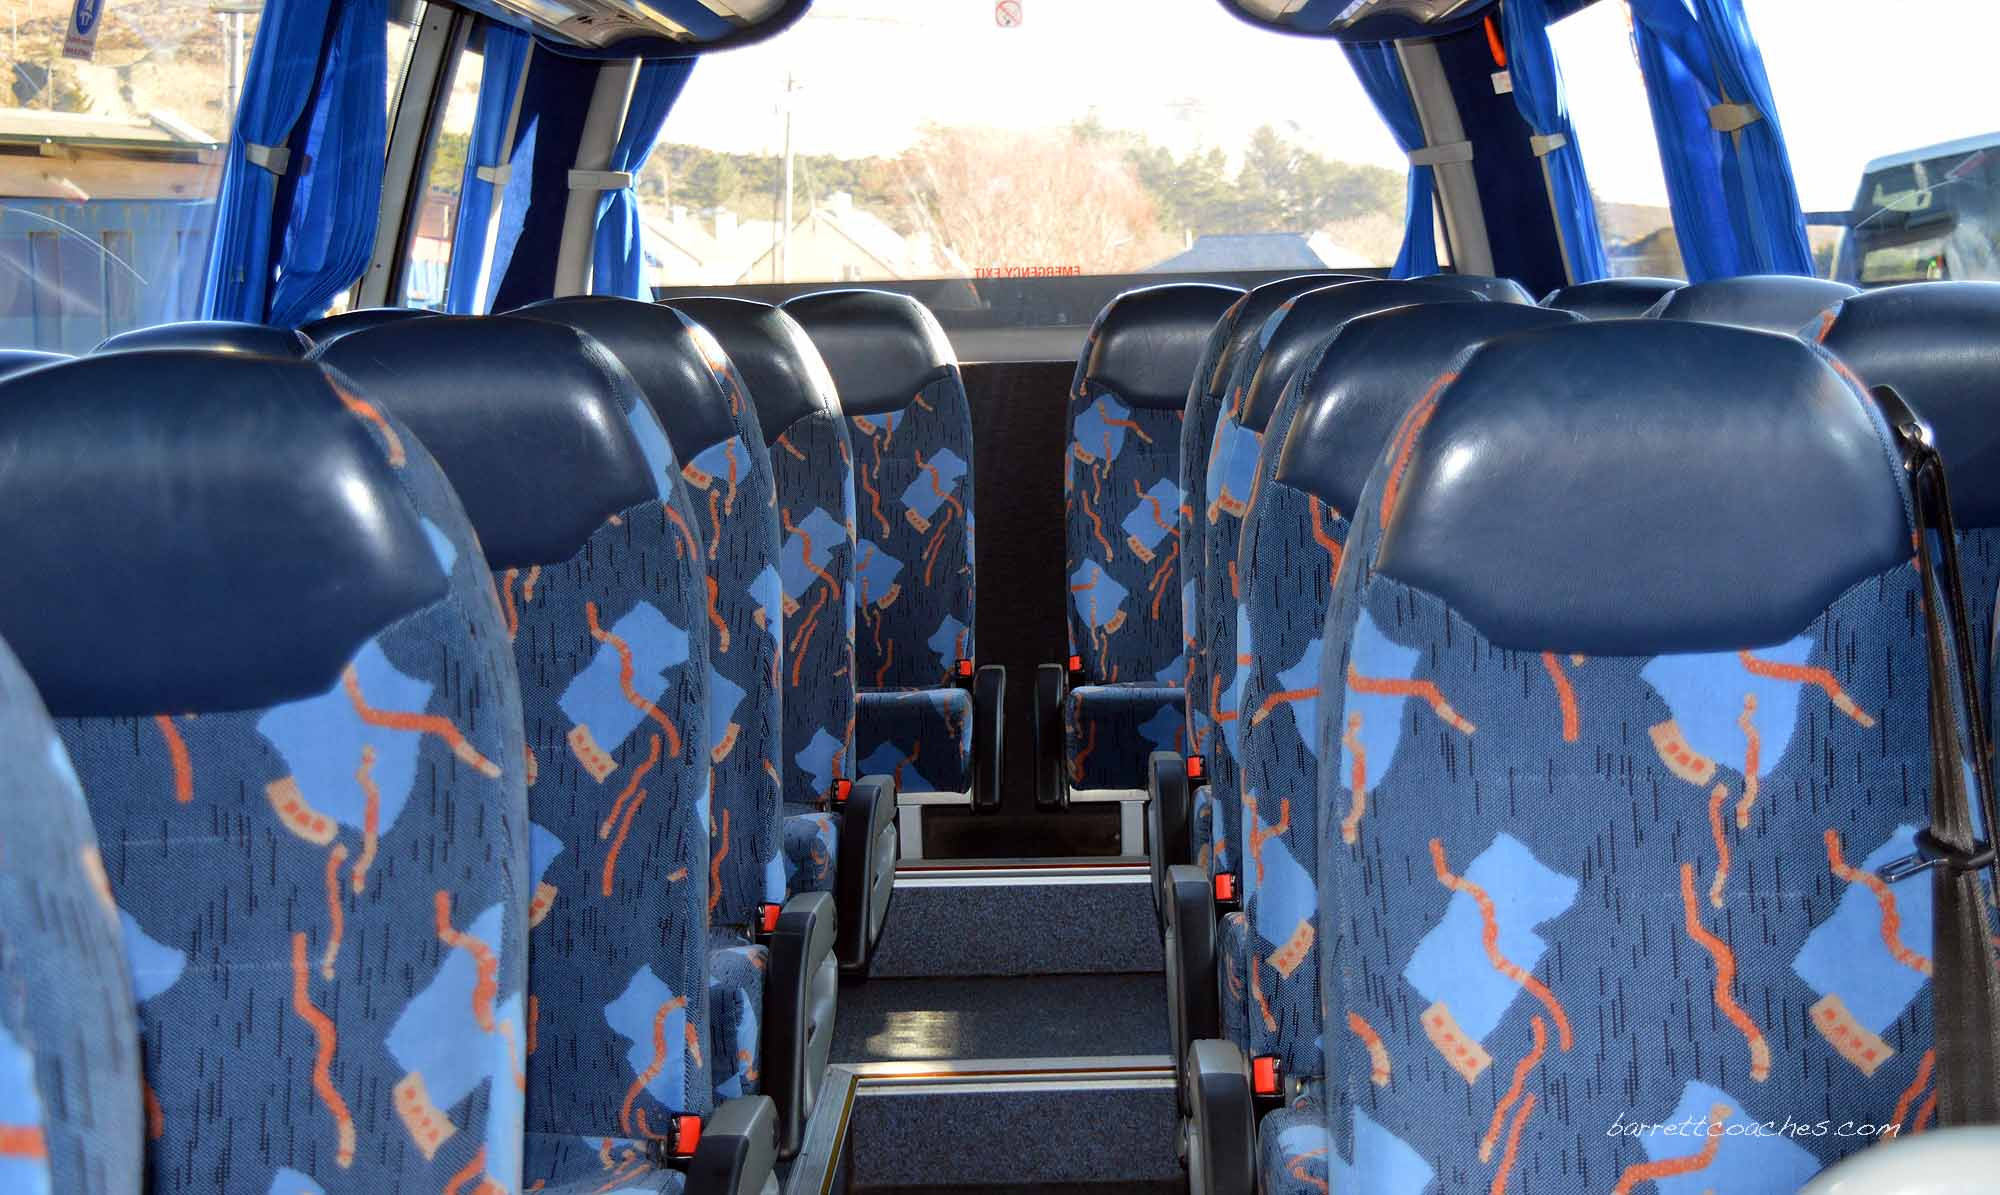 Barrett Coaches 22 seater interior